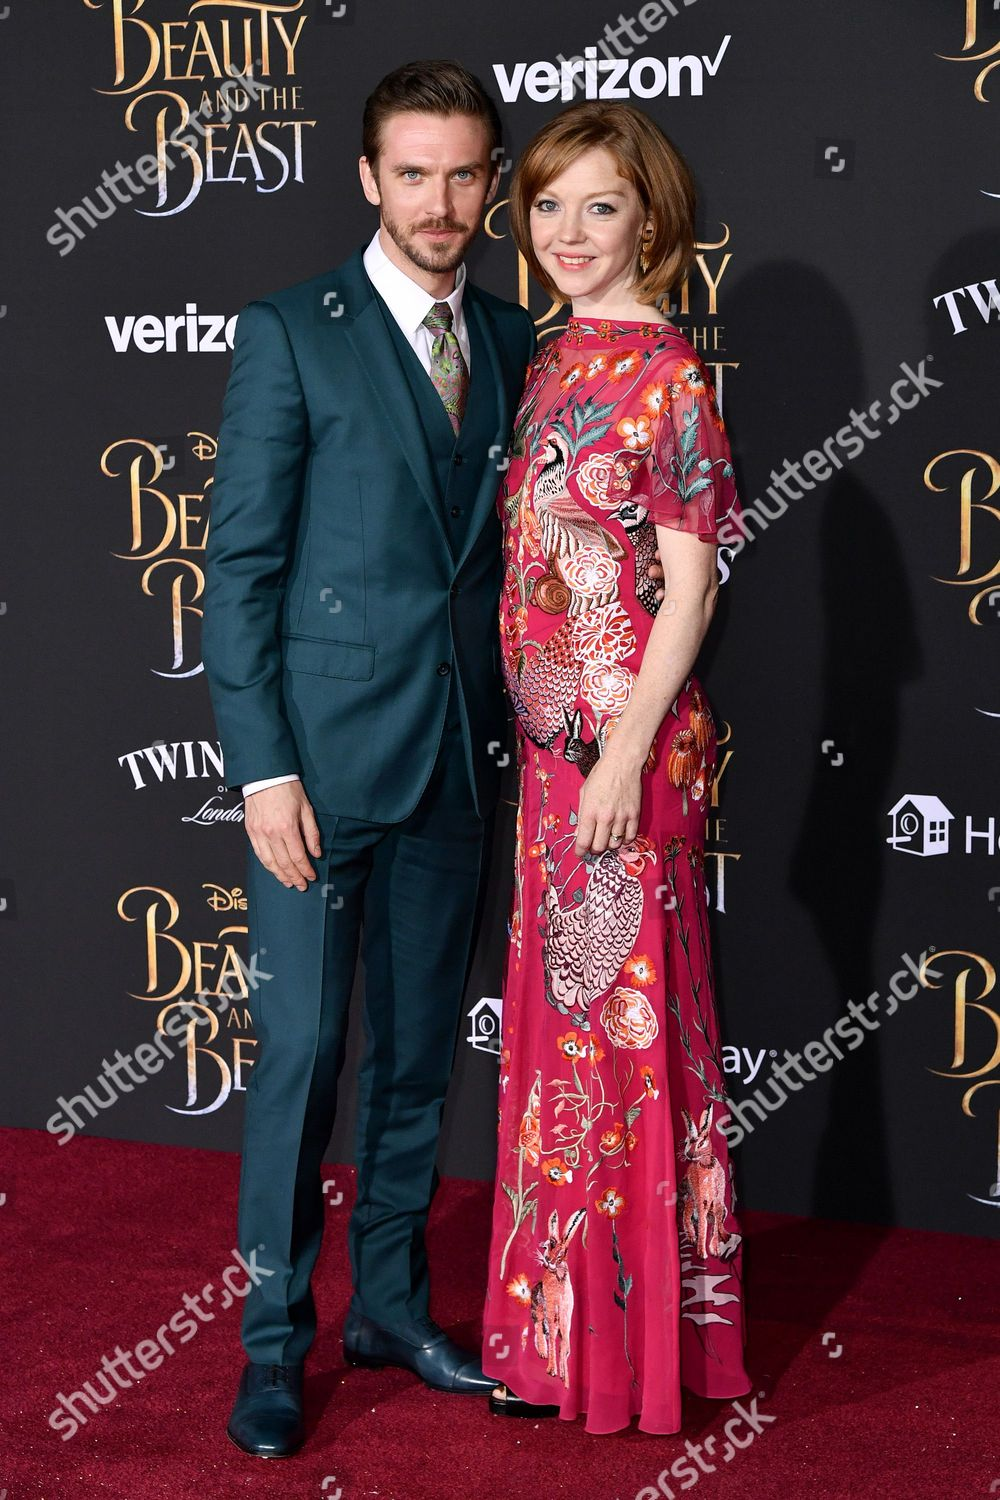 Dan Stevens Susie Hariet Editorial Stock Photo Stock Image Shutterstock Find the perfect susie hariet stock photos and editorial news pictures from getty images. https www shutterstock com editorial image editorial beauty and the beast film premiere los angeles usa 02 mar 2017 8460905aa